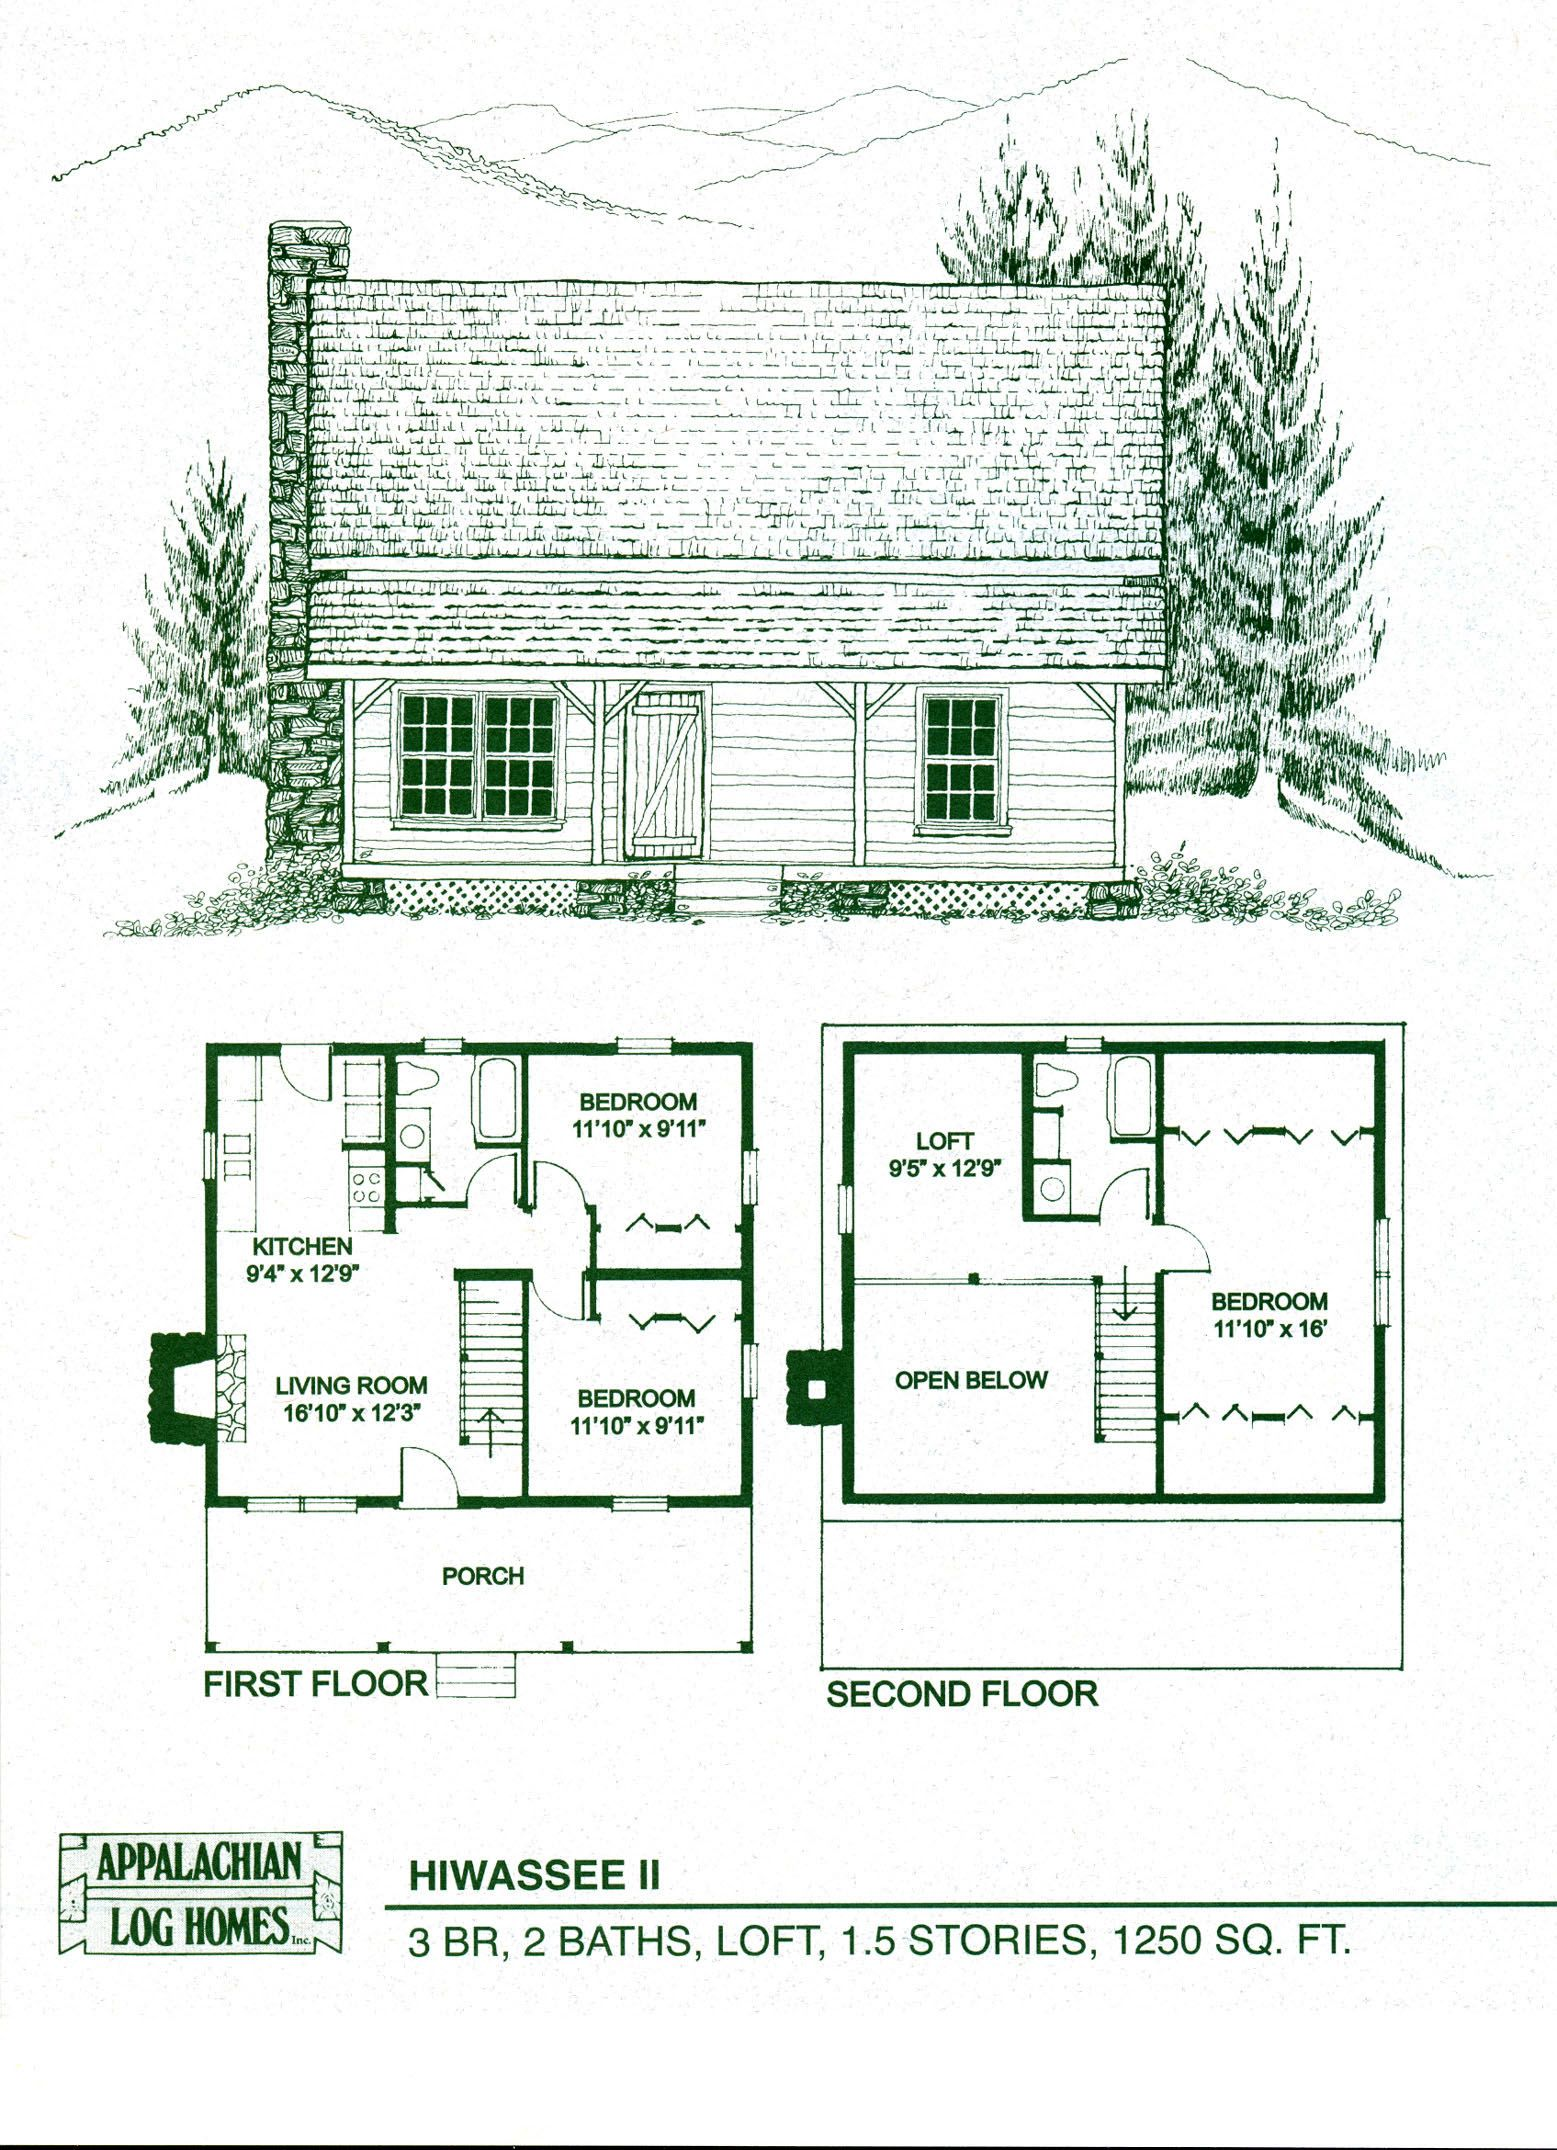 log home floor plans log cabin kits appalachian log homes - Cabin Floor Plans